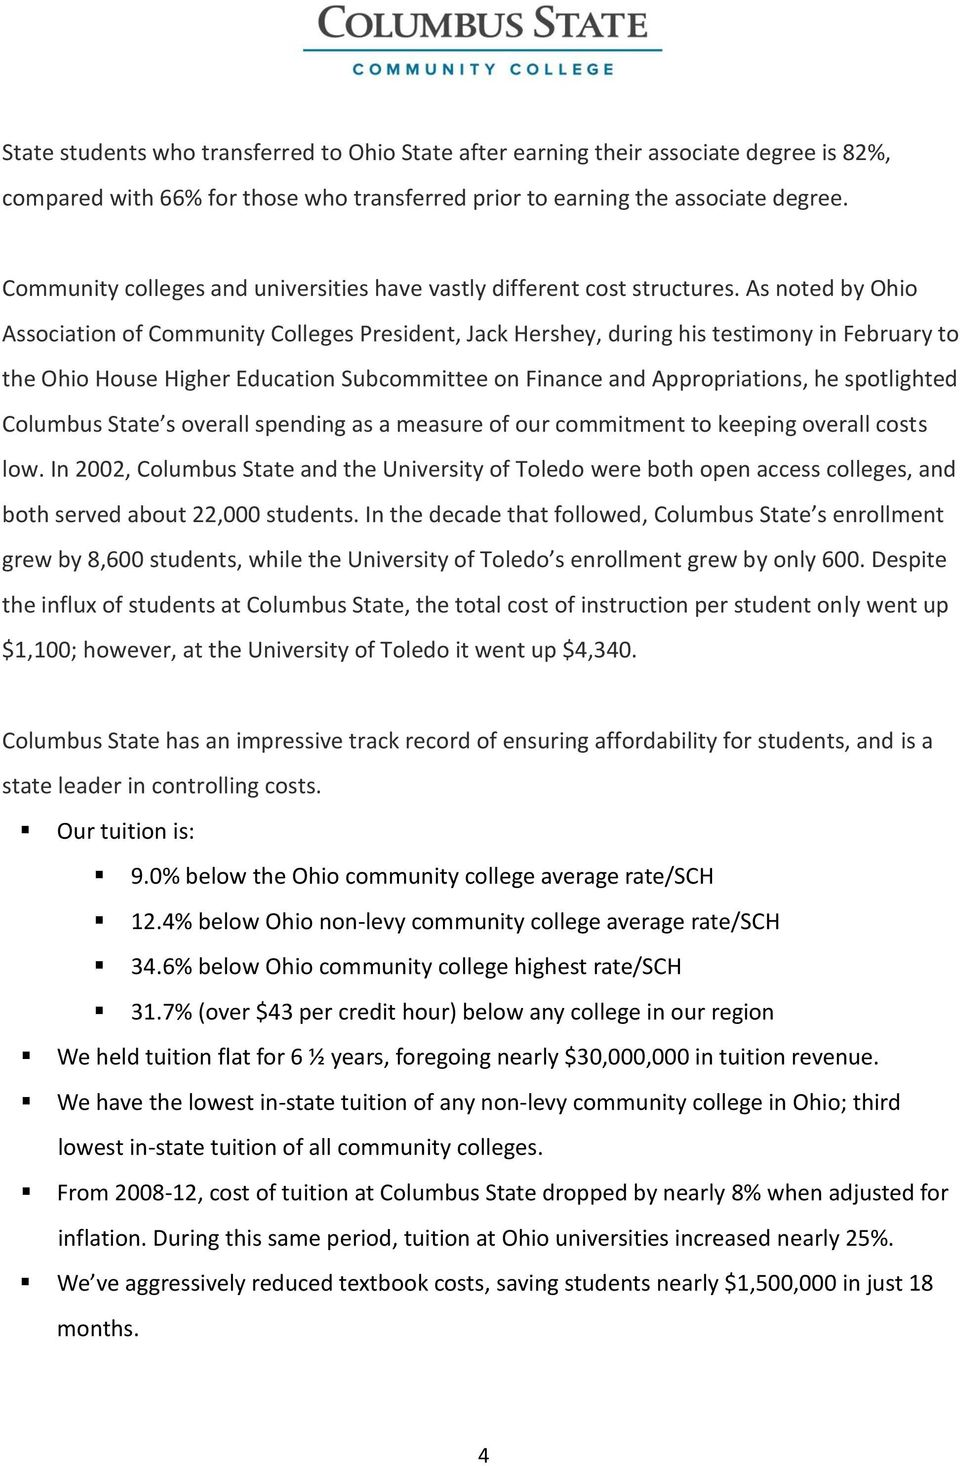 As noted by Ohio Association of Community Colleges President, Jack Hershey, during his testimony in February to the Ohio House Higher Education Subcommittee on Finance and Appropriations, he